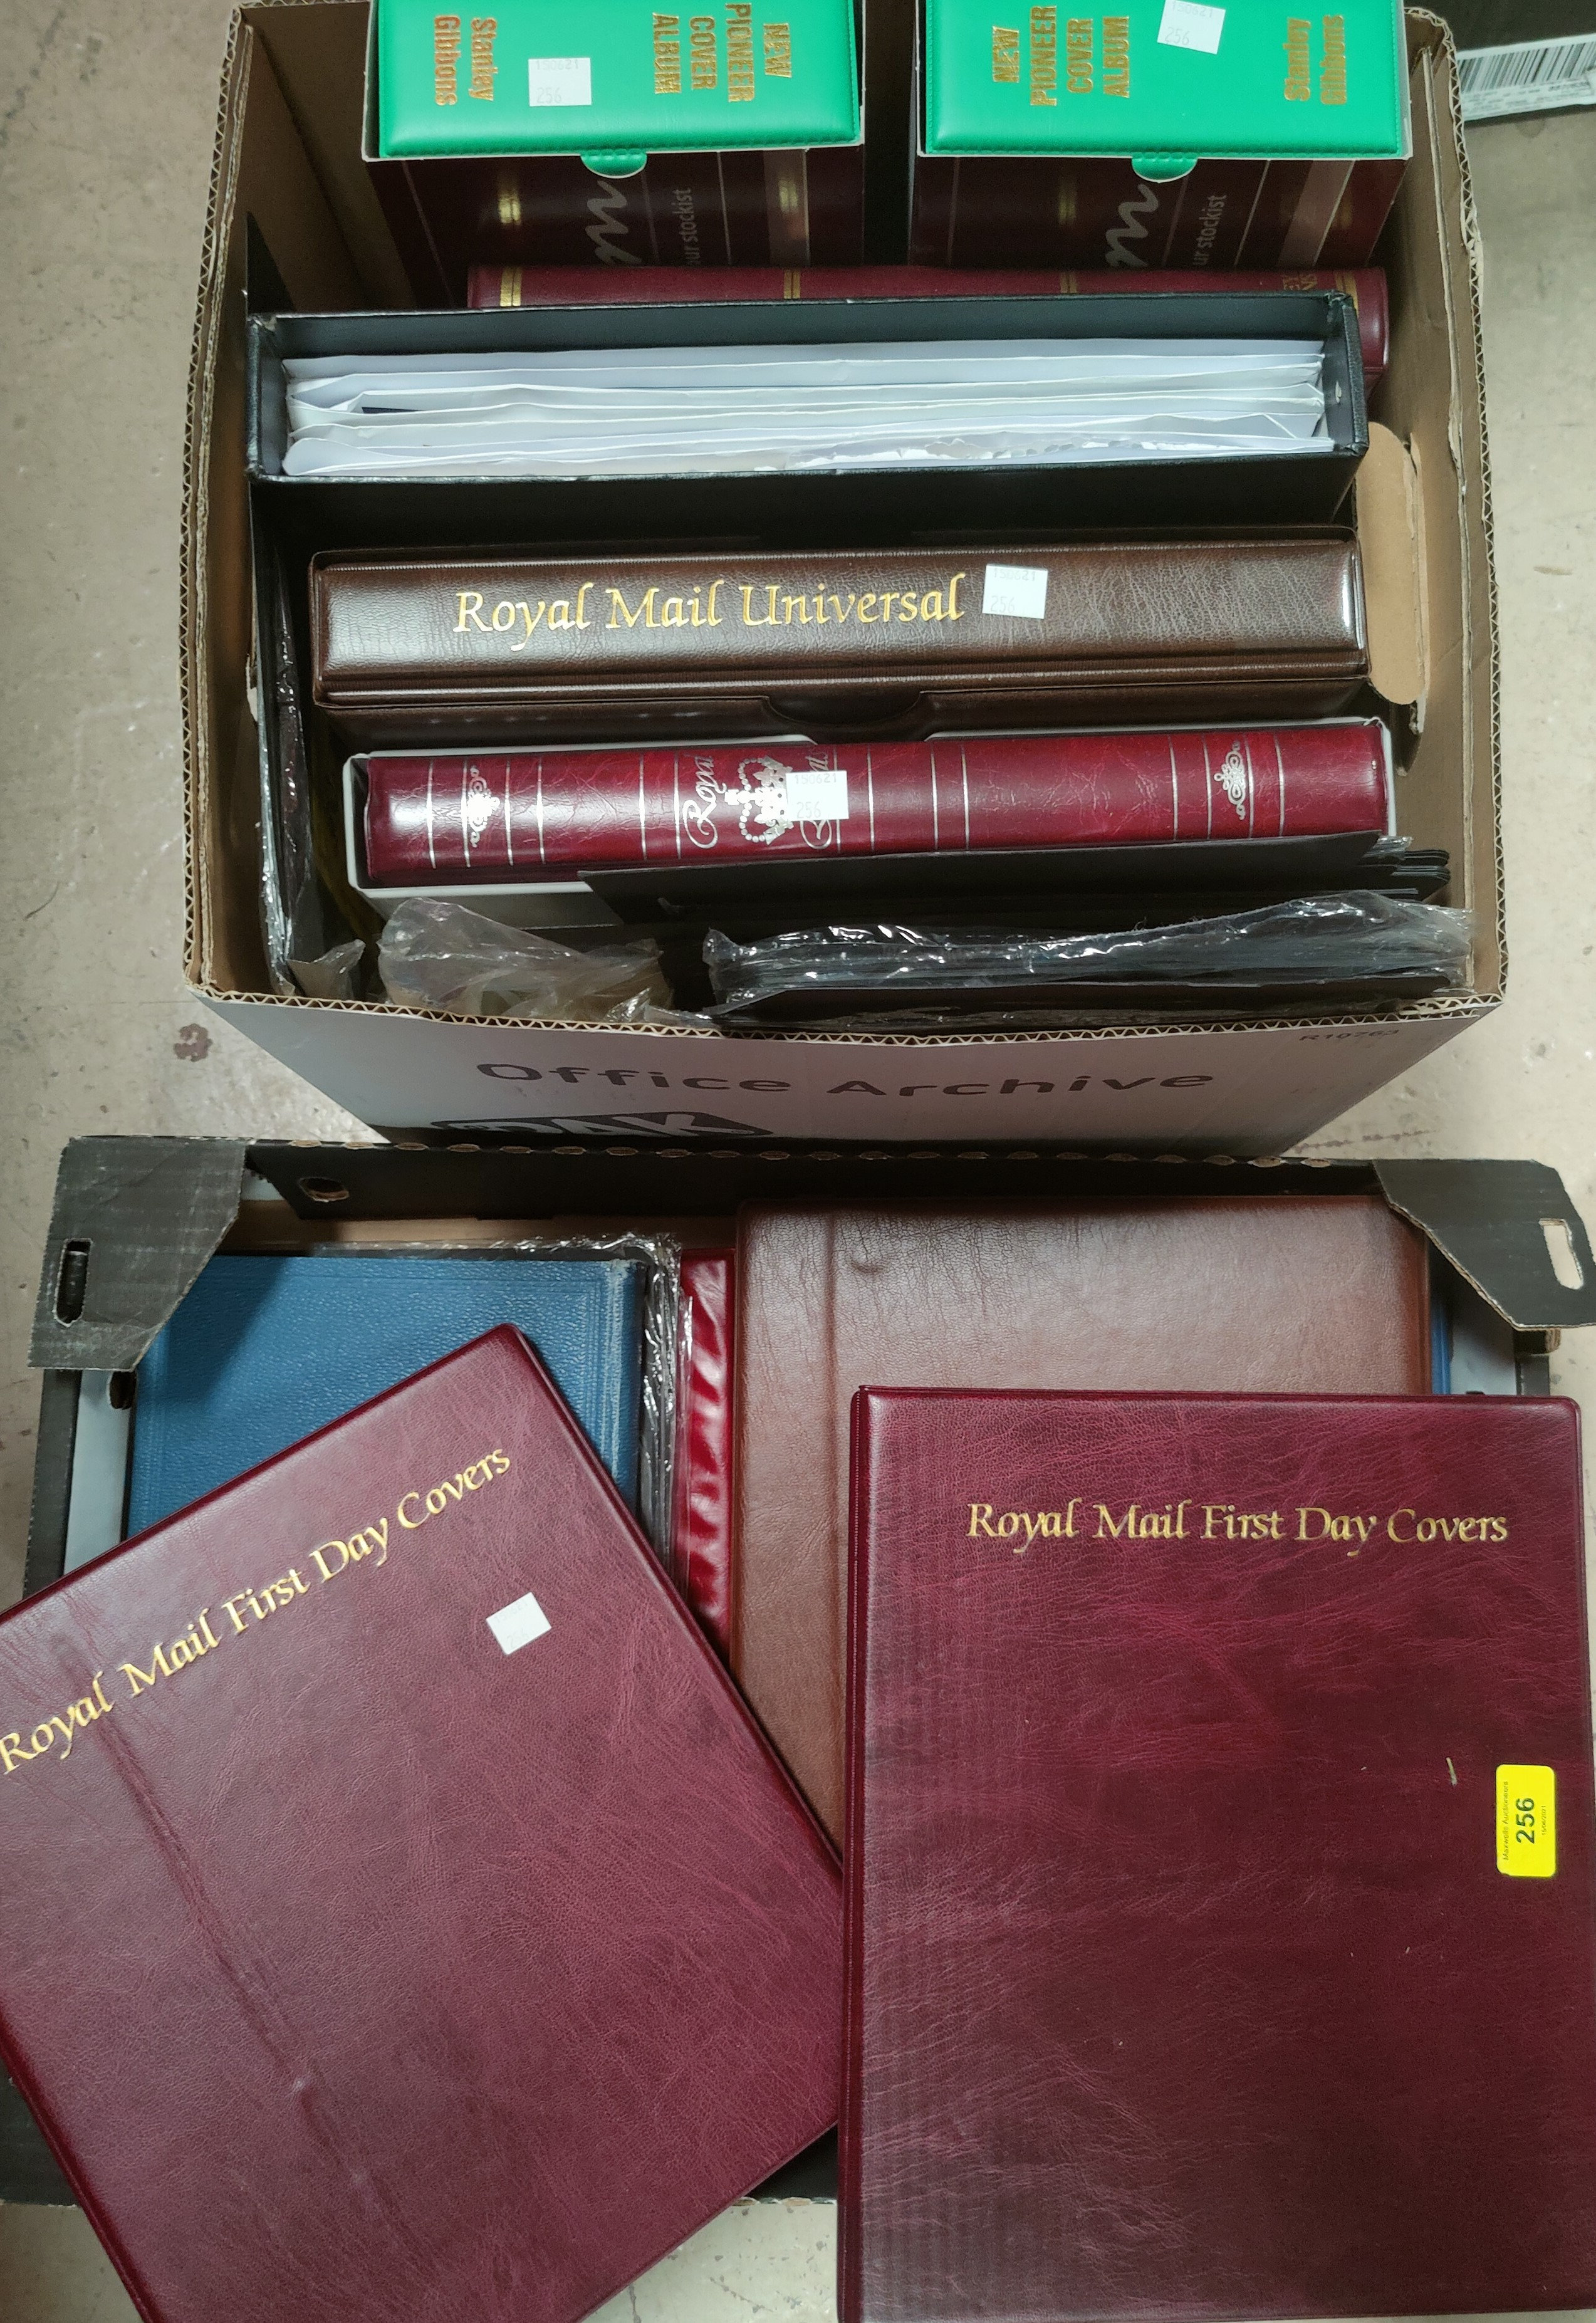 A selection of empty loose-leaf and other albums.